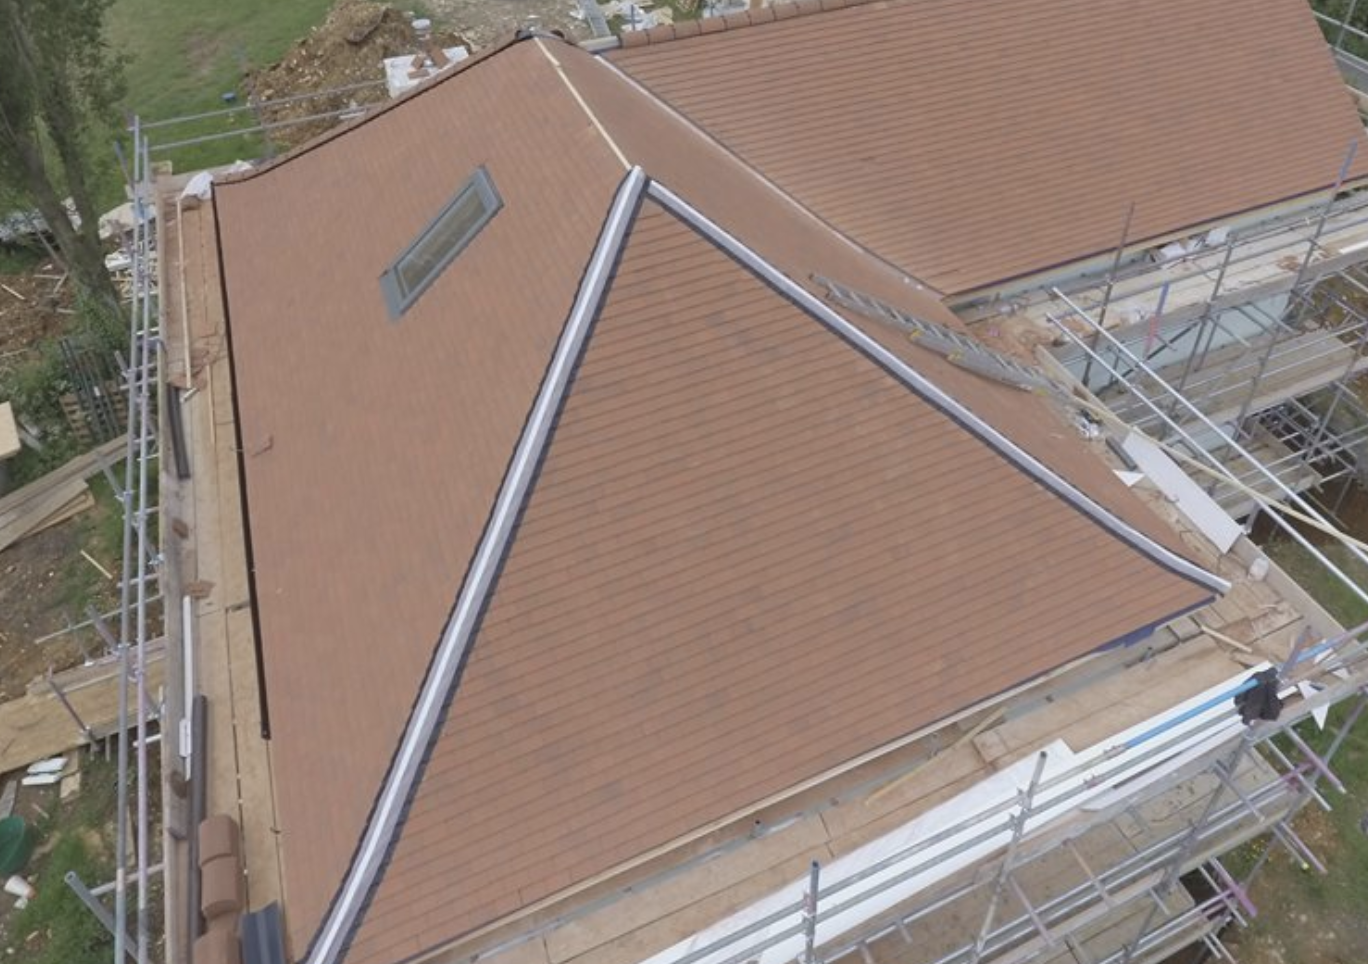 Roof Tiling and Roof Slating Croydon - Gecko Roofing